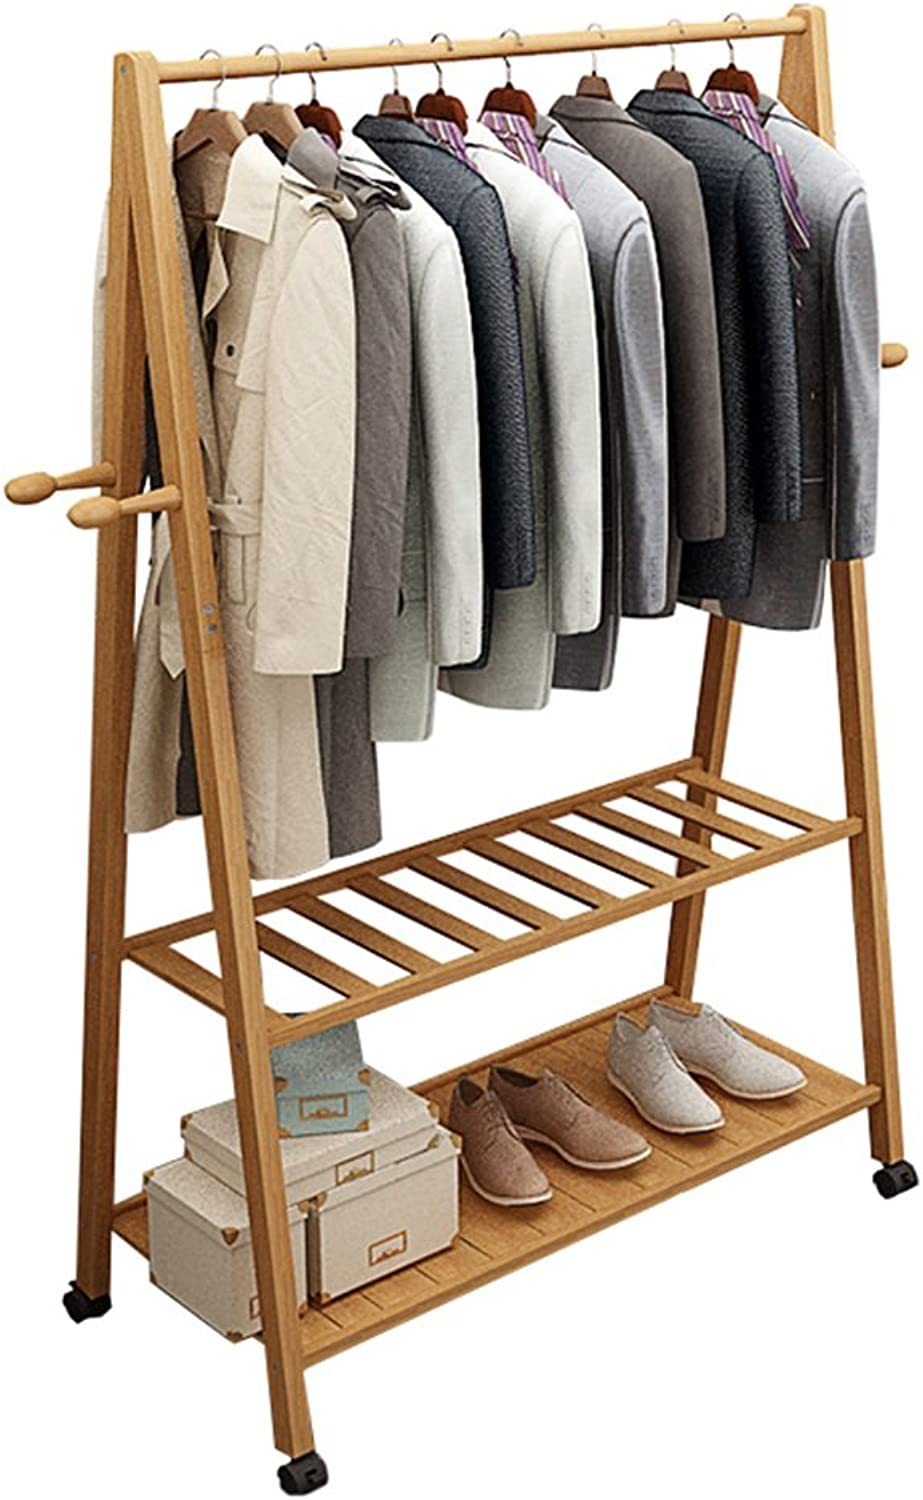 QING MEI Coat Rack Floor Simple Modern Solid Wood Bedroom Moving Rack Simple Hanging Clothes Rack Rack A++ (Size   60X45X165cm)